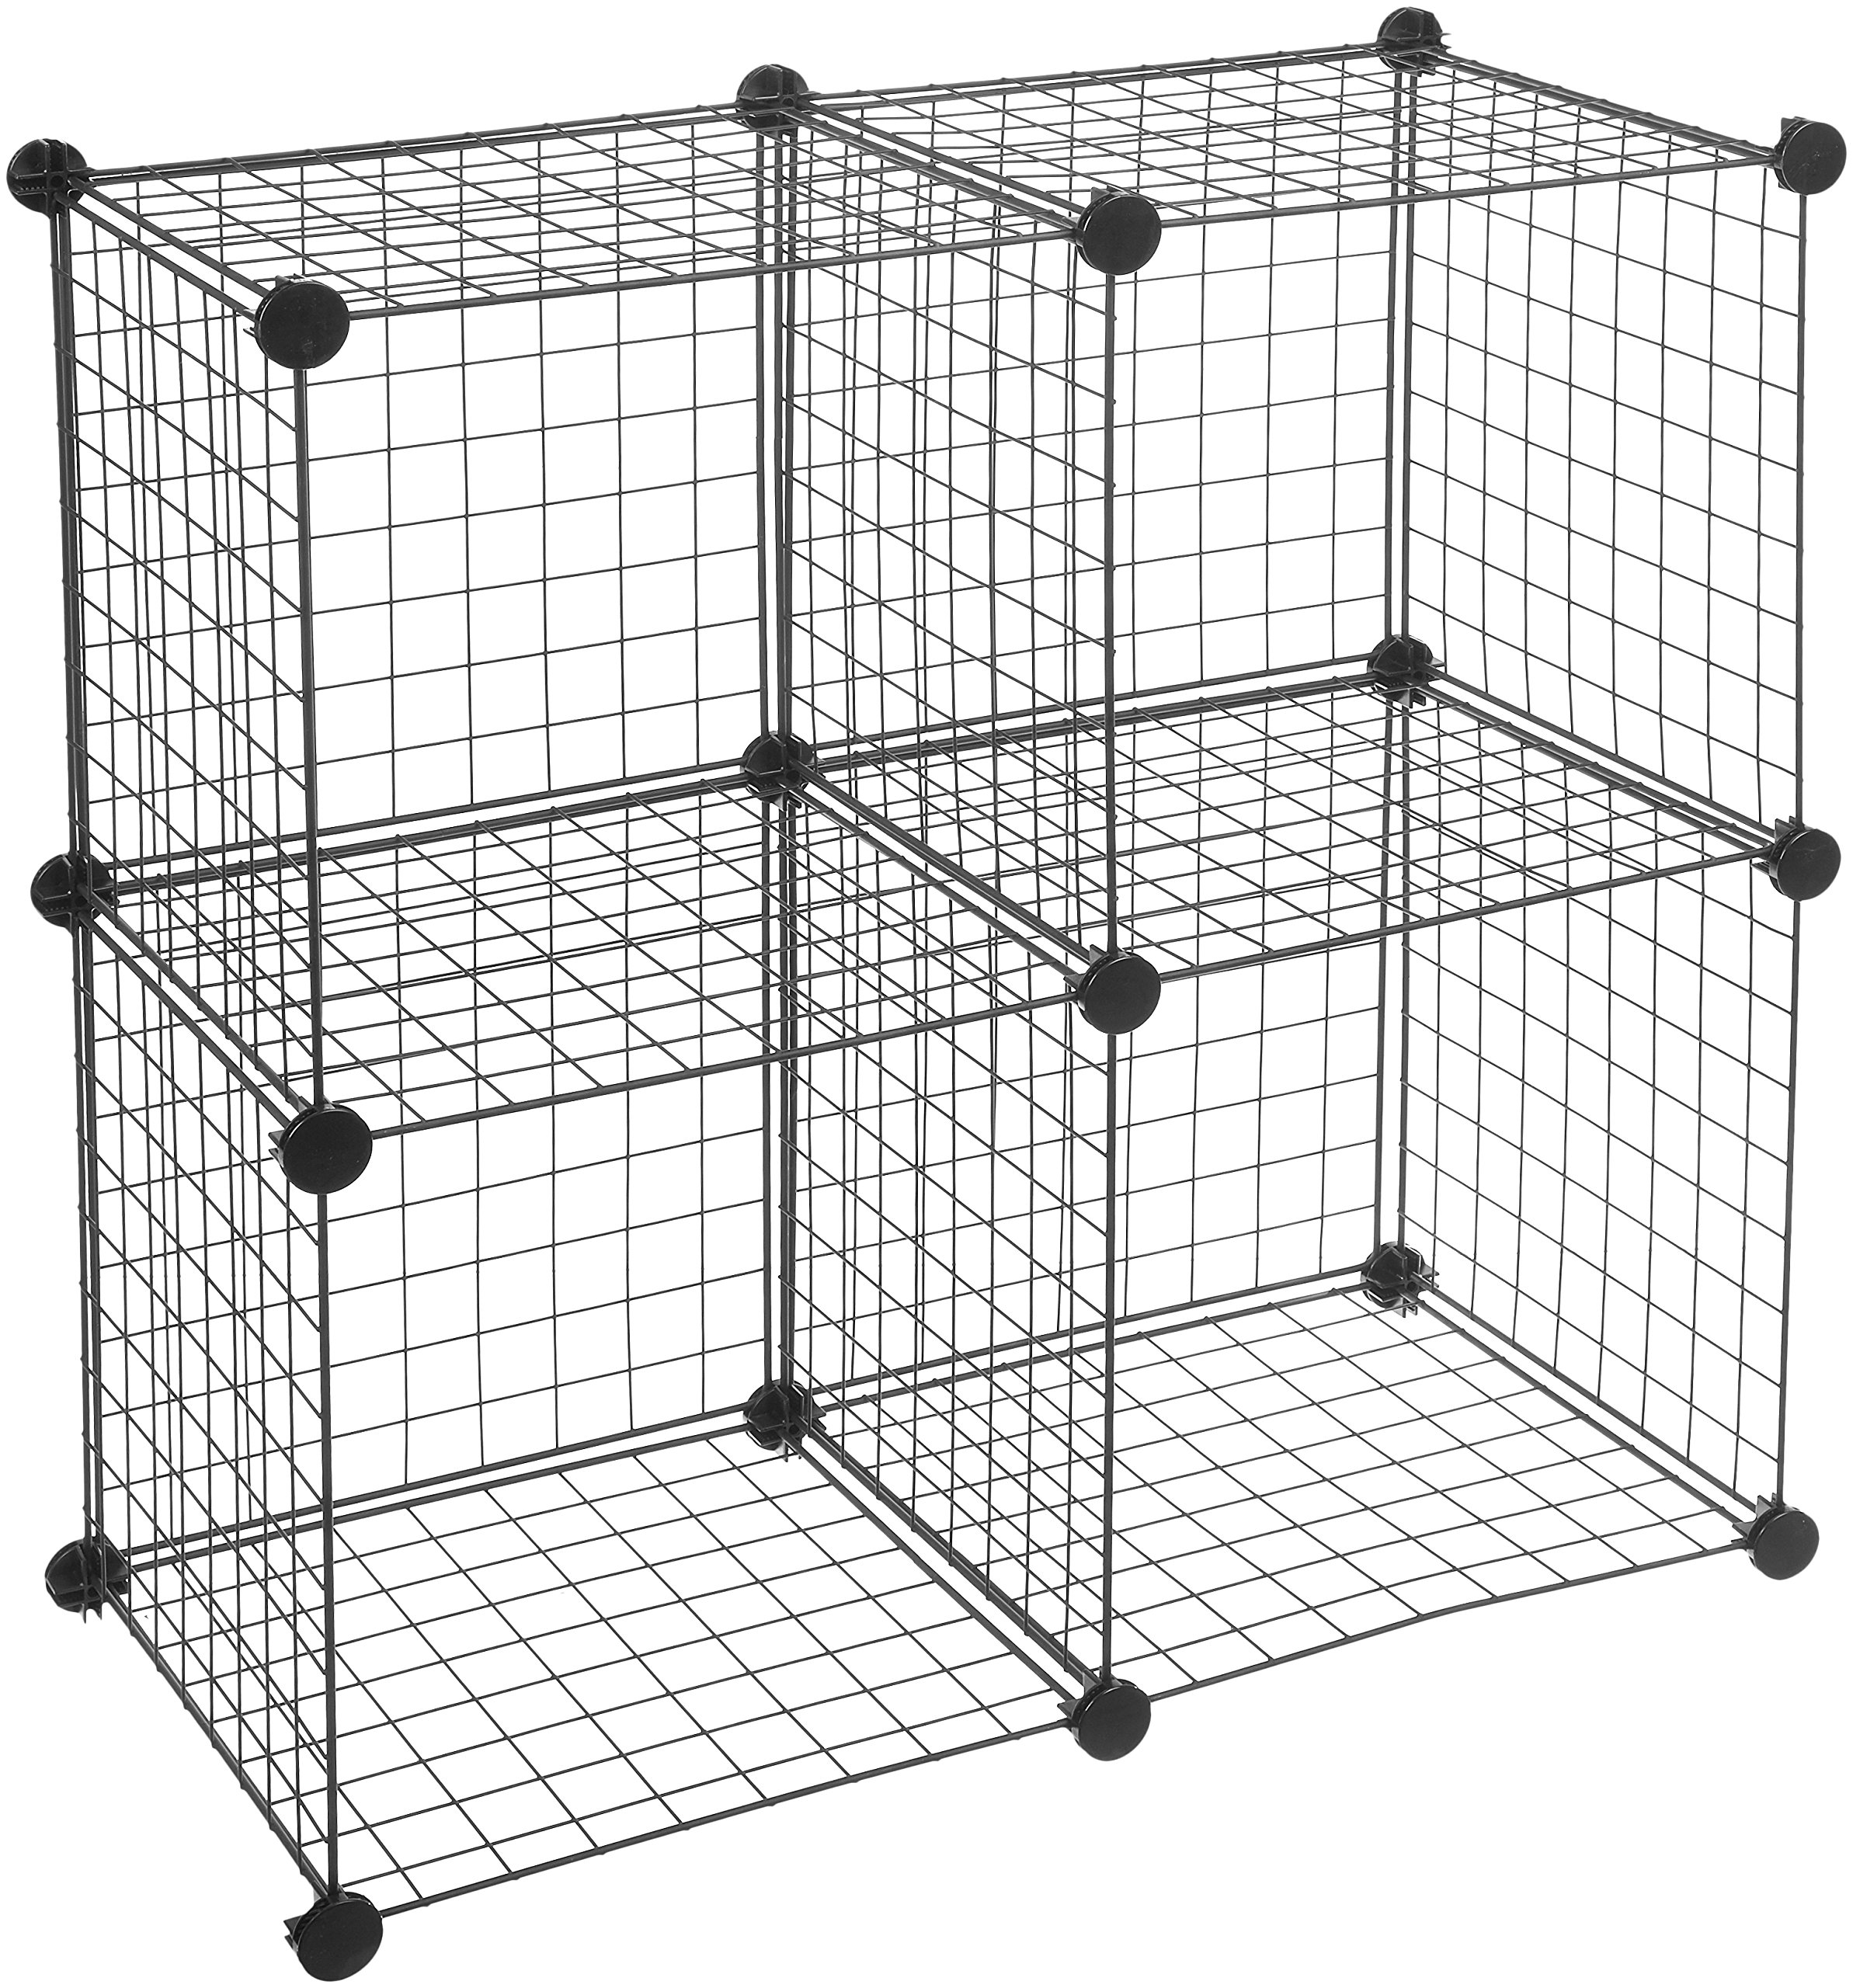 AmazonBasics 4 Cube Wire Storage Shelves - Black by AmazonBasics